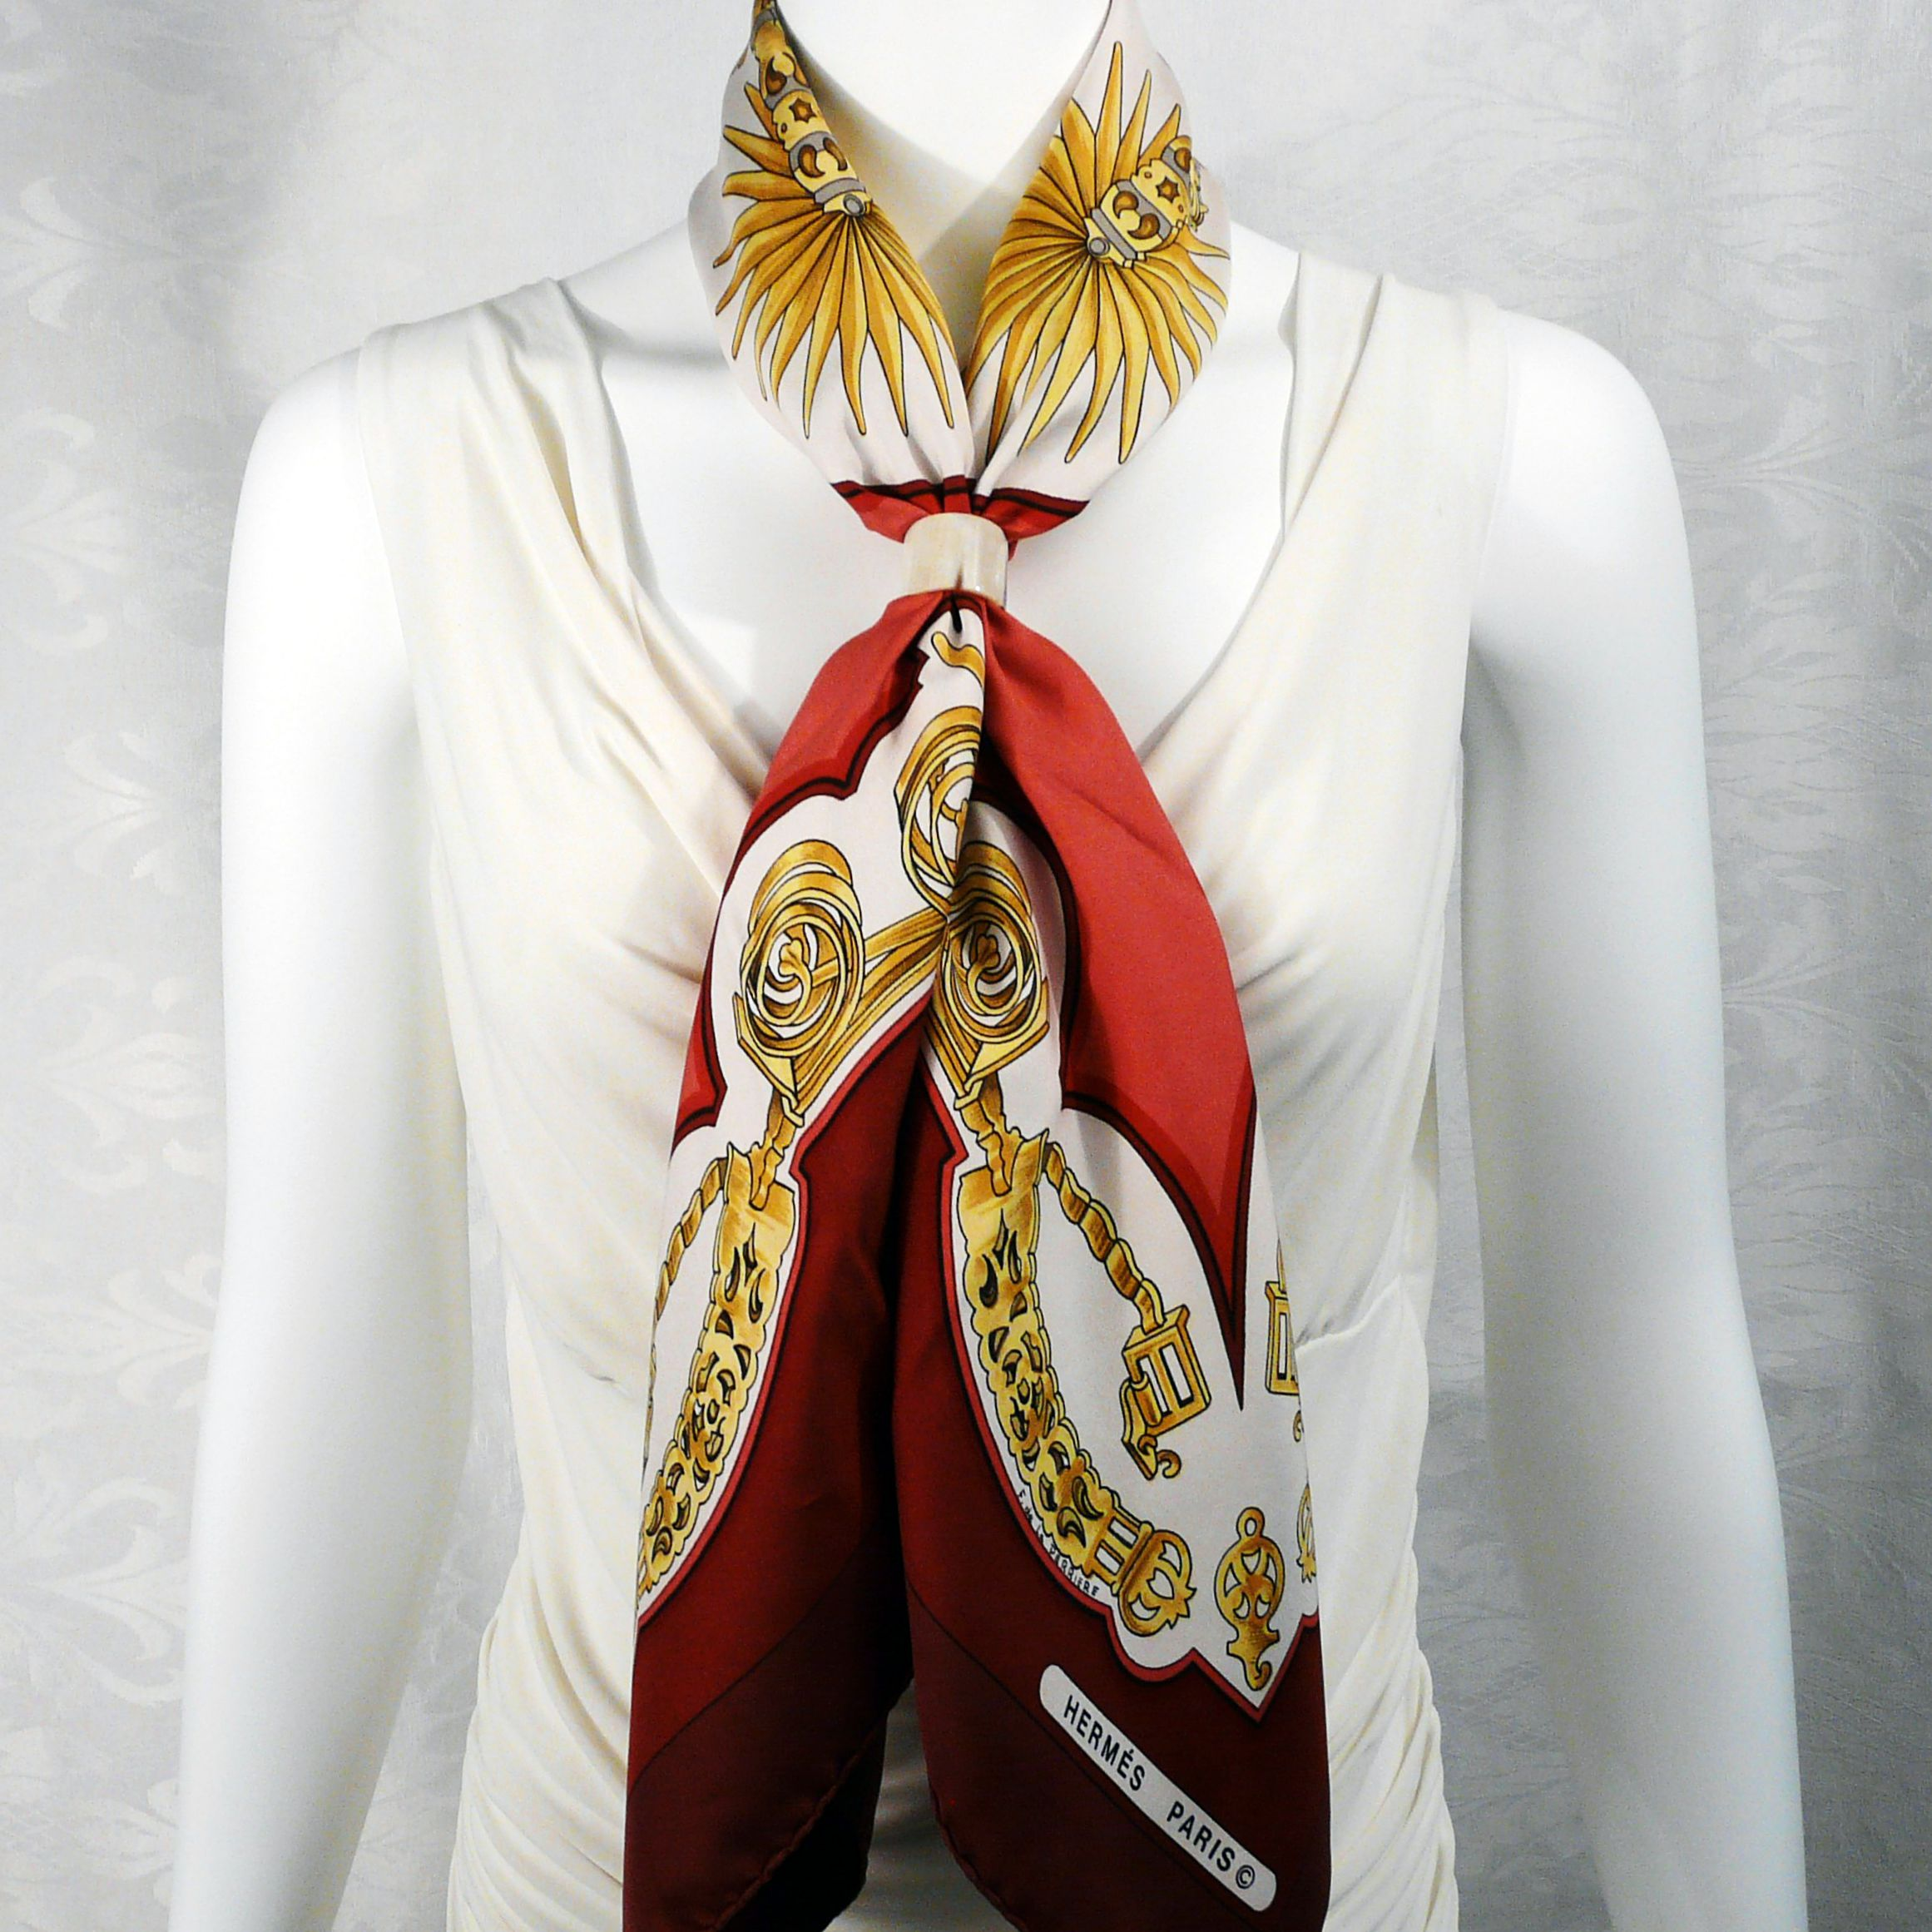 Eperon d'Or HERMES with Horn Anneau Pur Horn Scarf Ring Carre de Paris